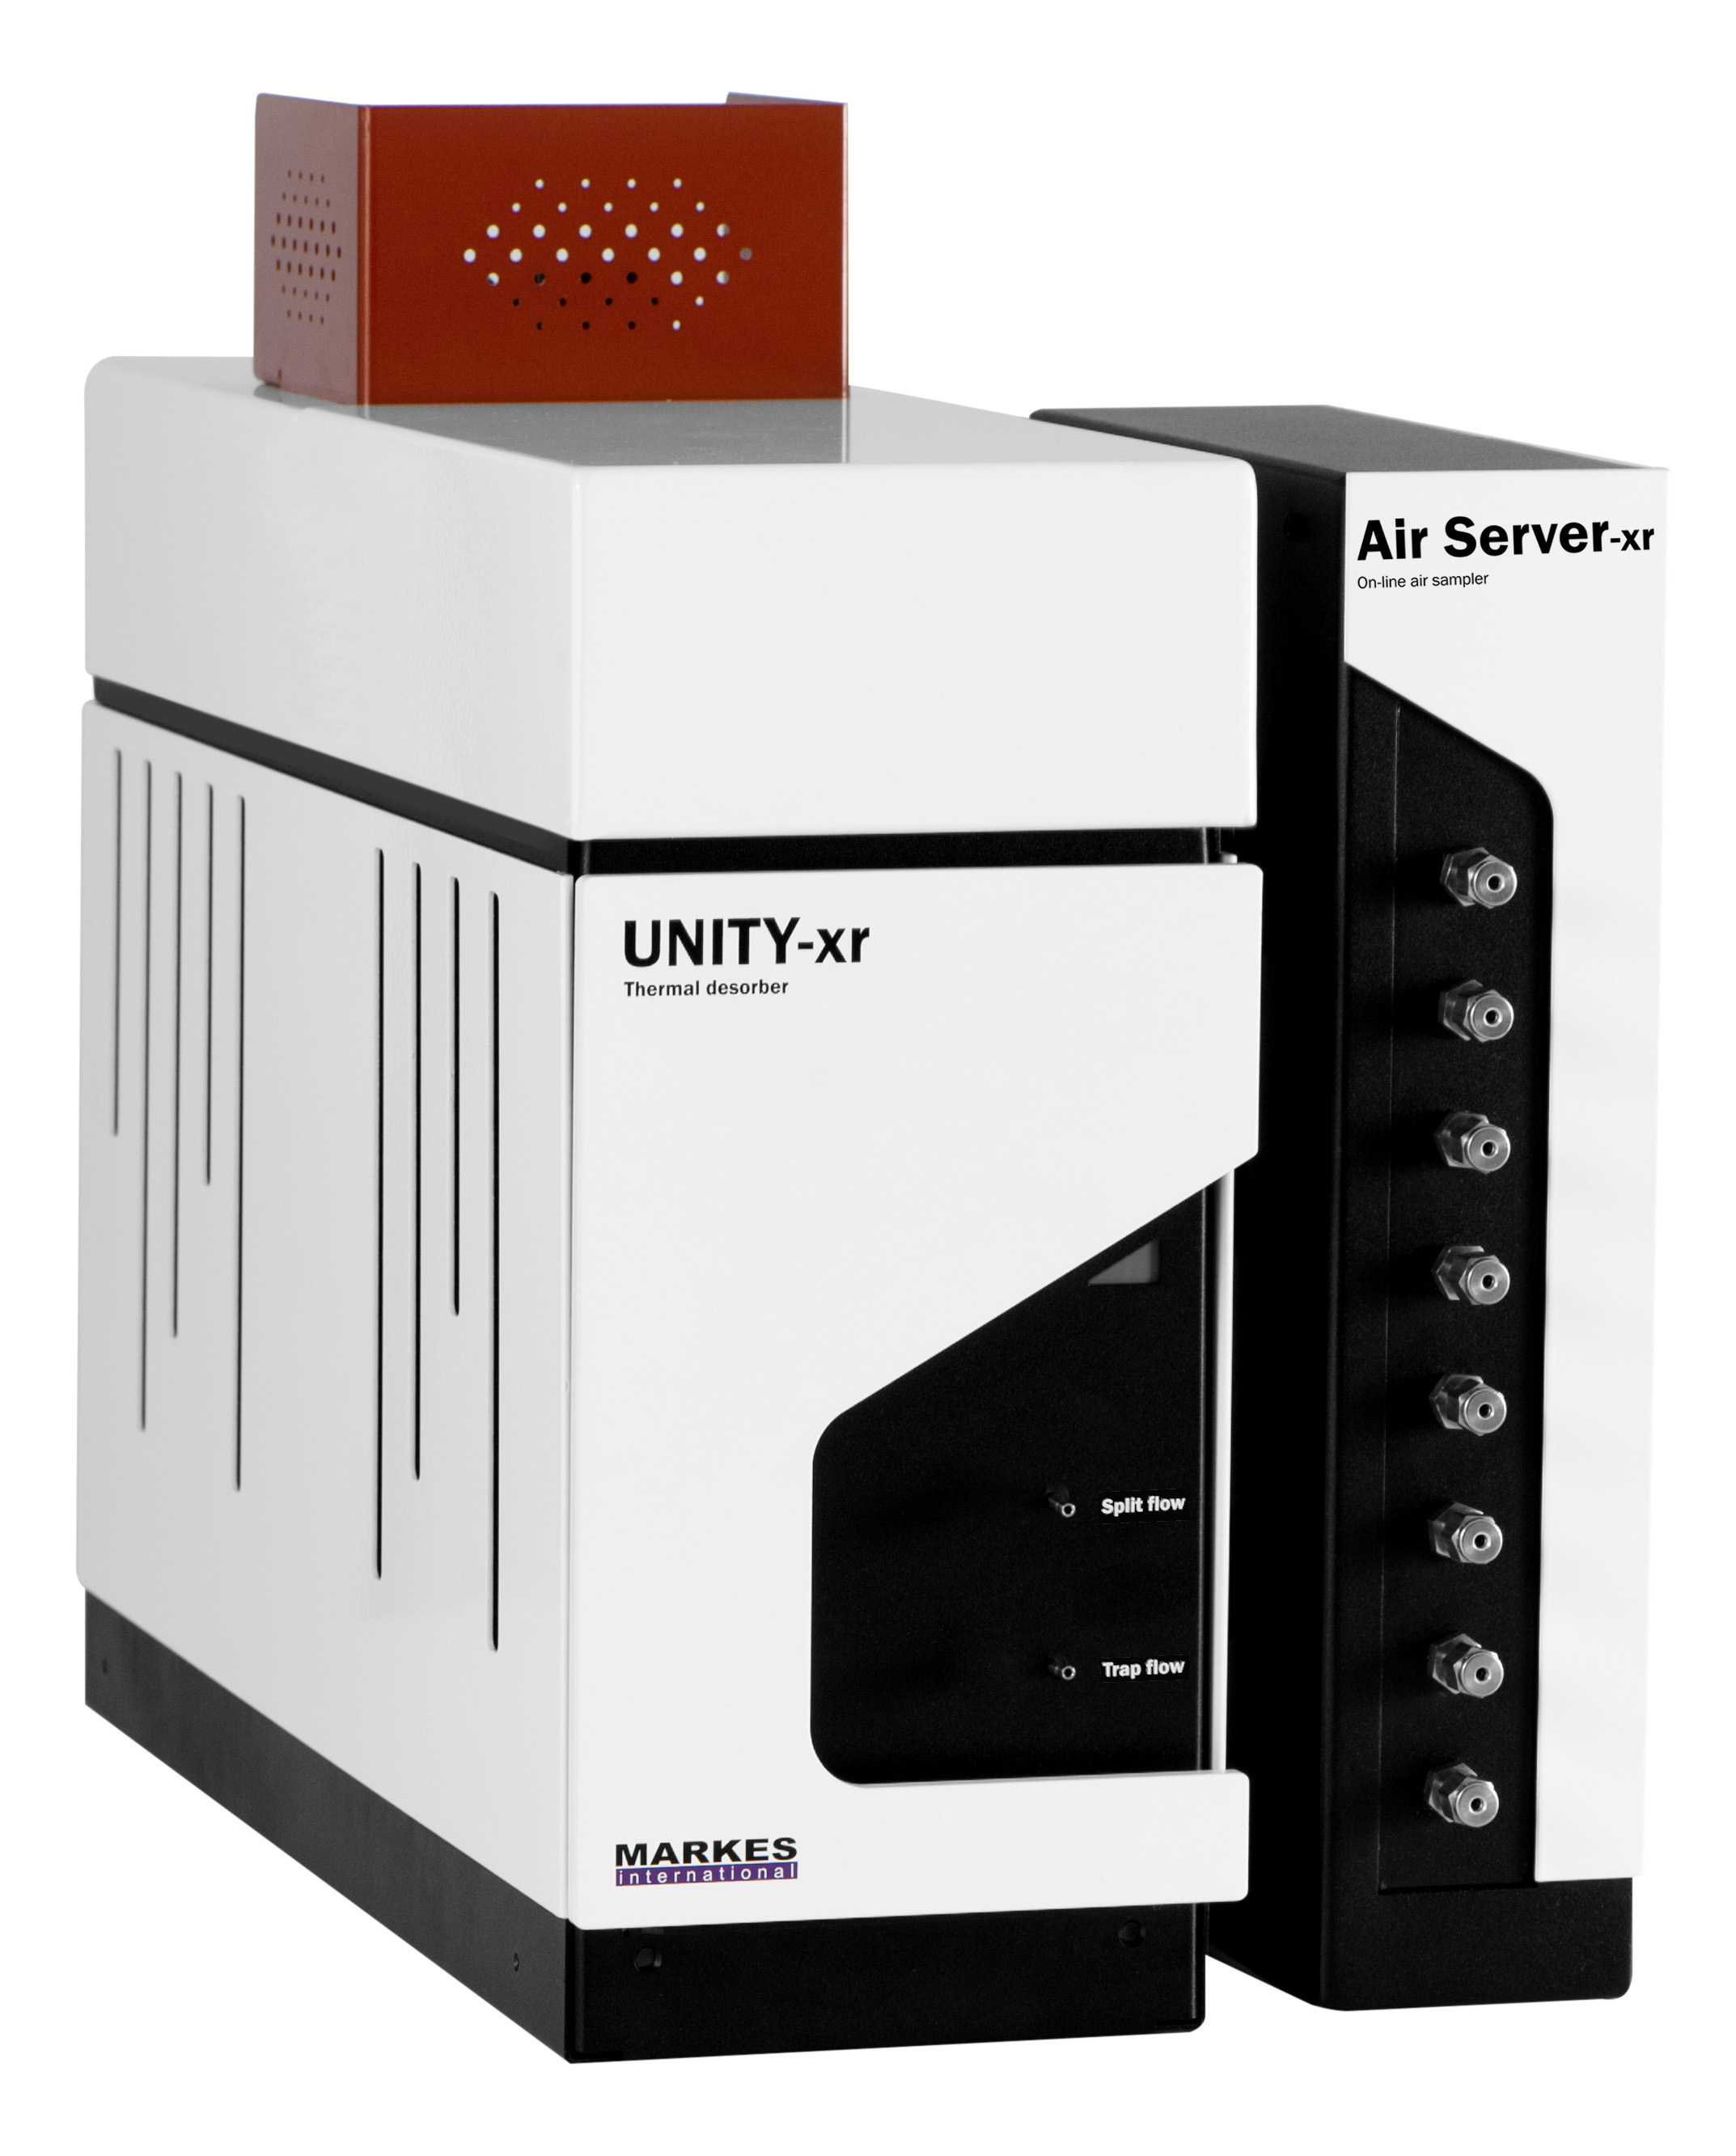 UNITY Xr Air Server Xr From Left